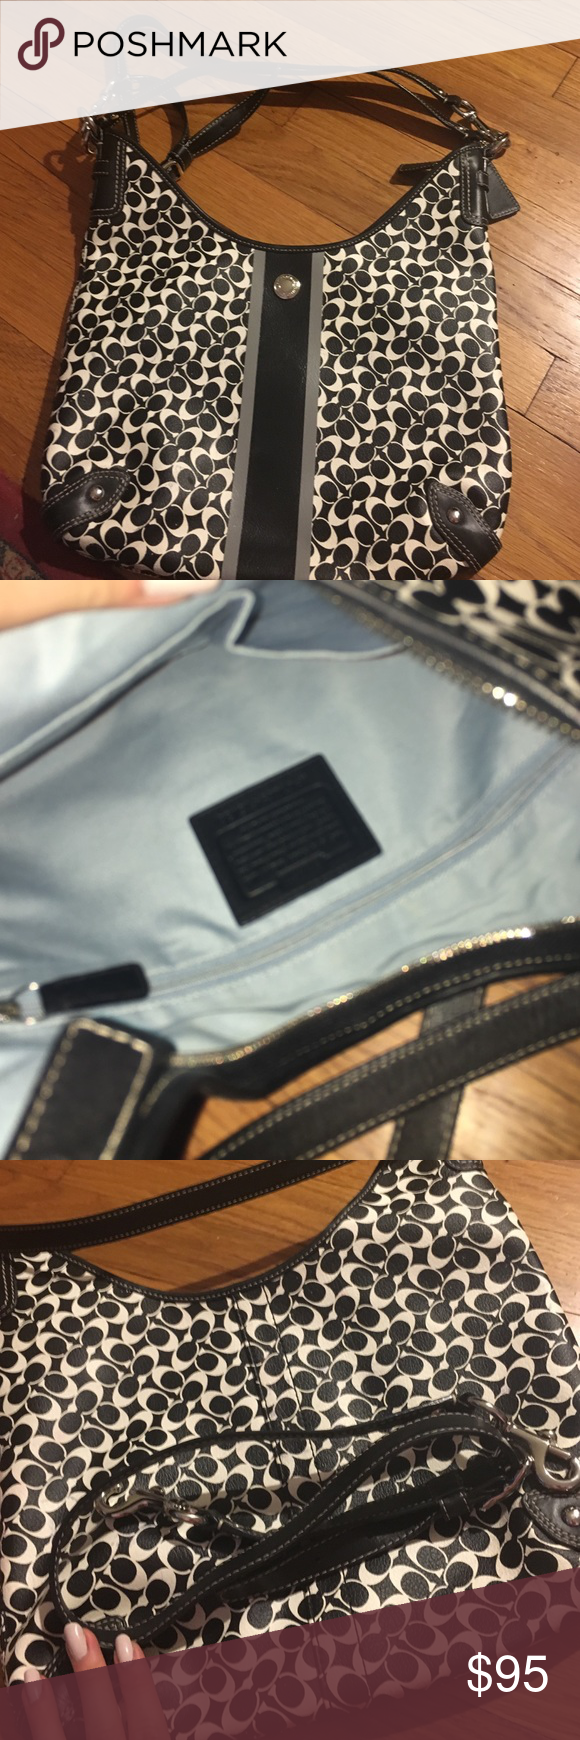 Coach black and white printed large shoulder bag Hardly used black and white C print coach bag, turquoise interior, removable strap Coach Bags Shoulder Bags